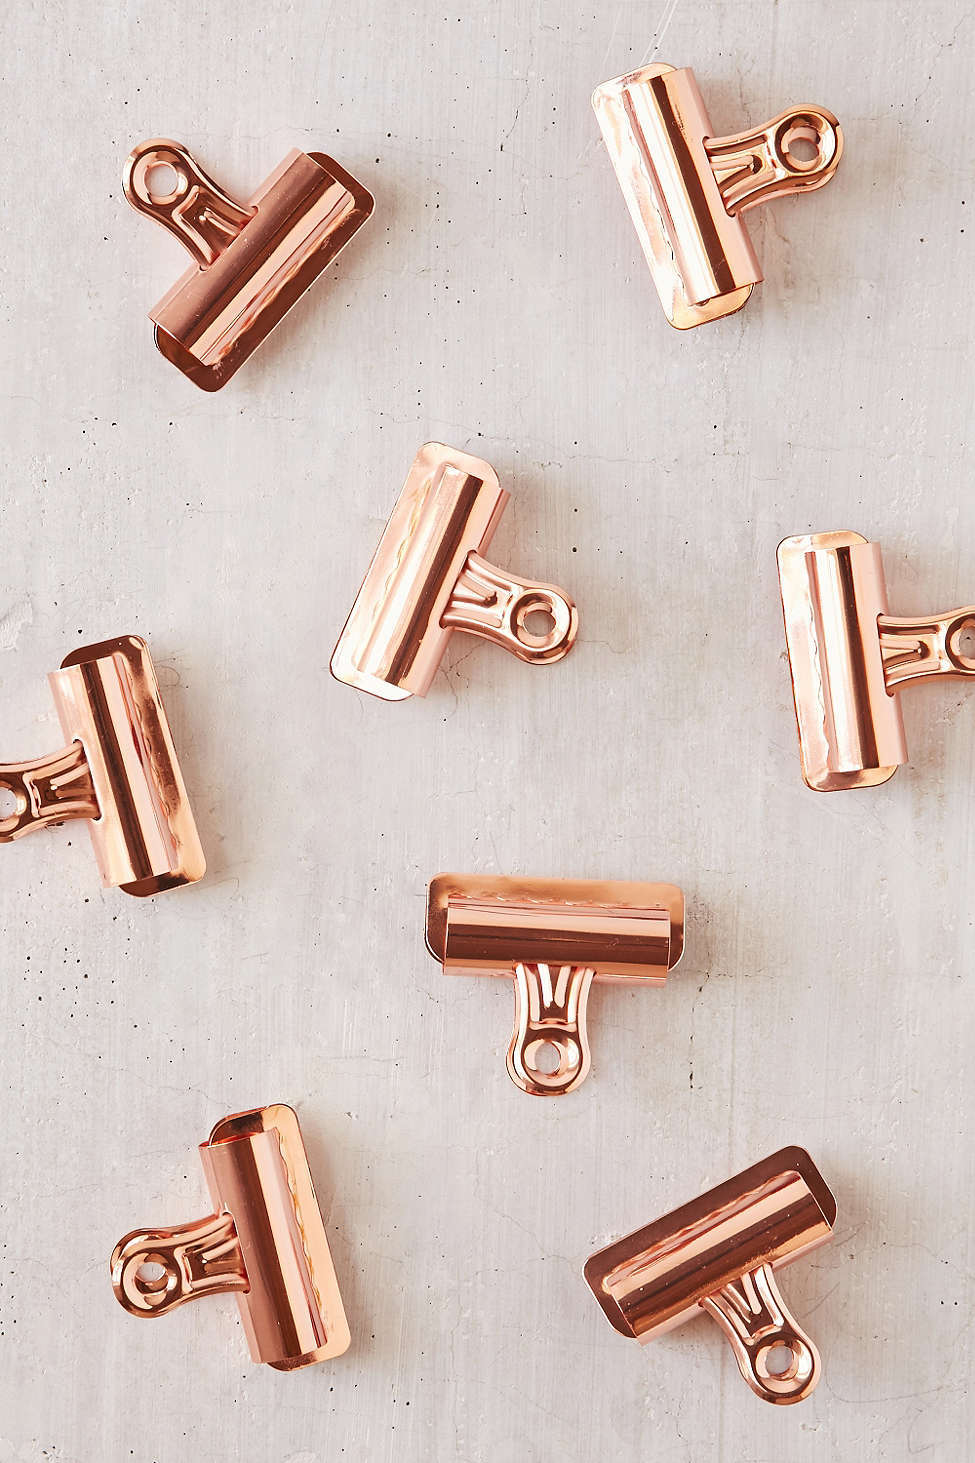 13 Copper Office Supplies We're Crushing On